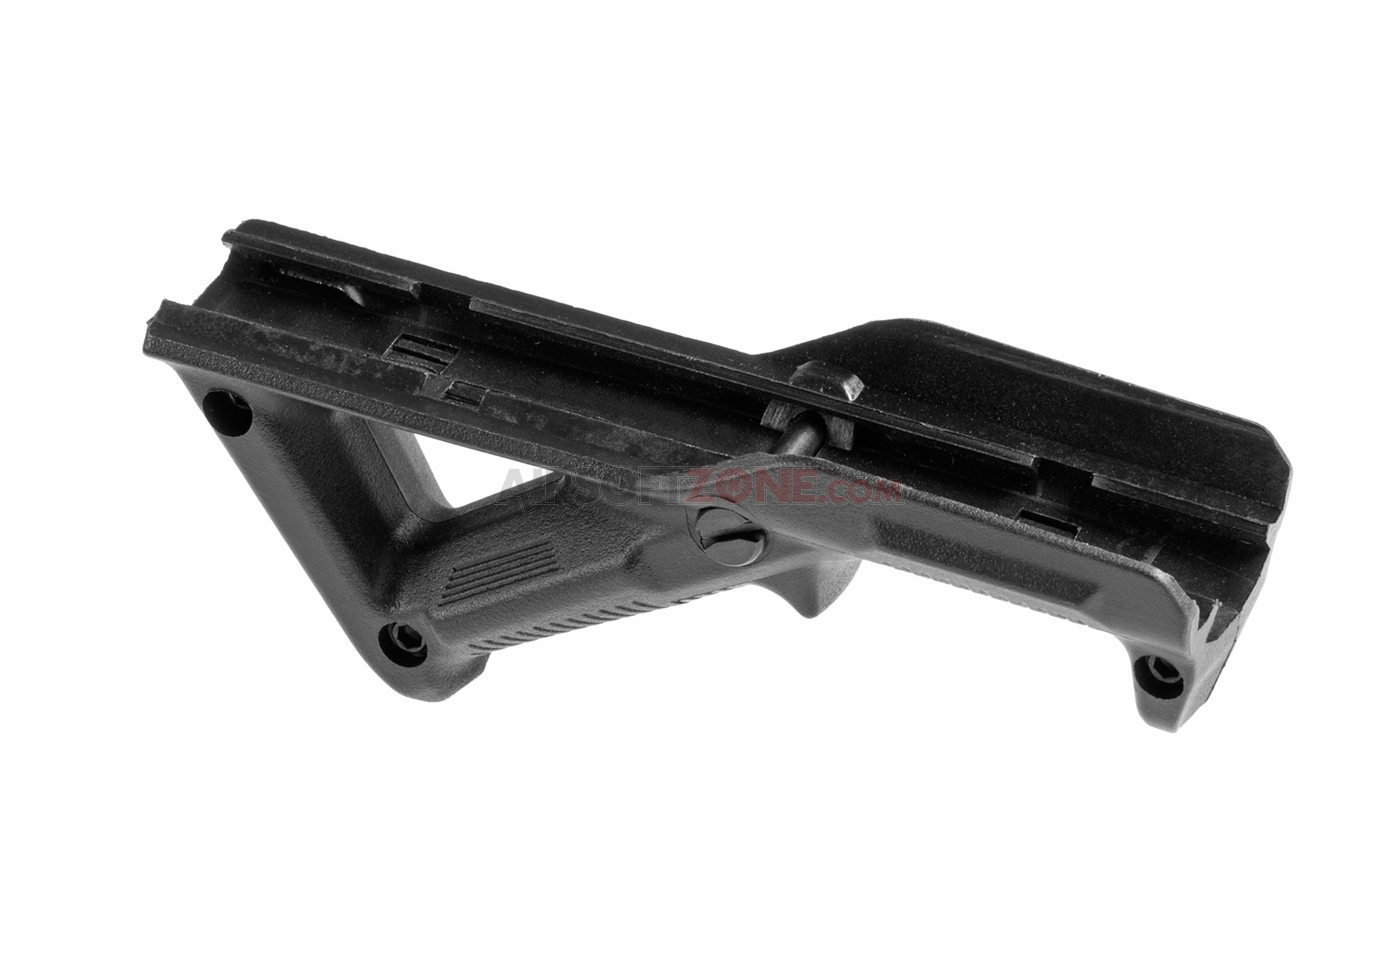 Ffg-1 Angled Fore-Grip imagine